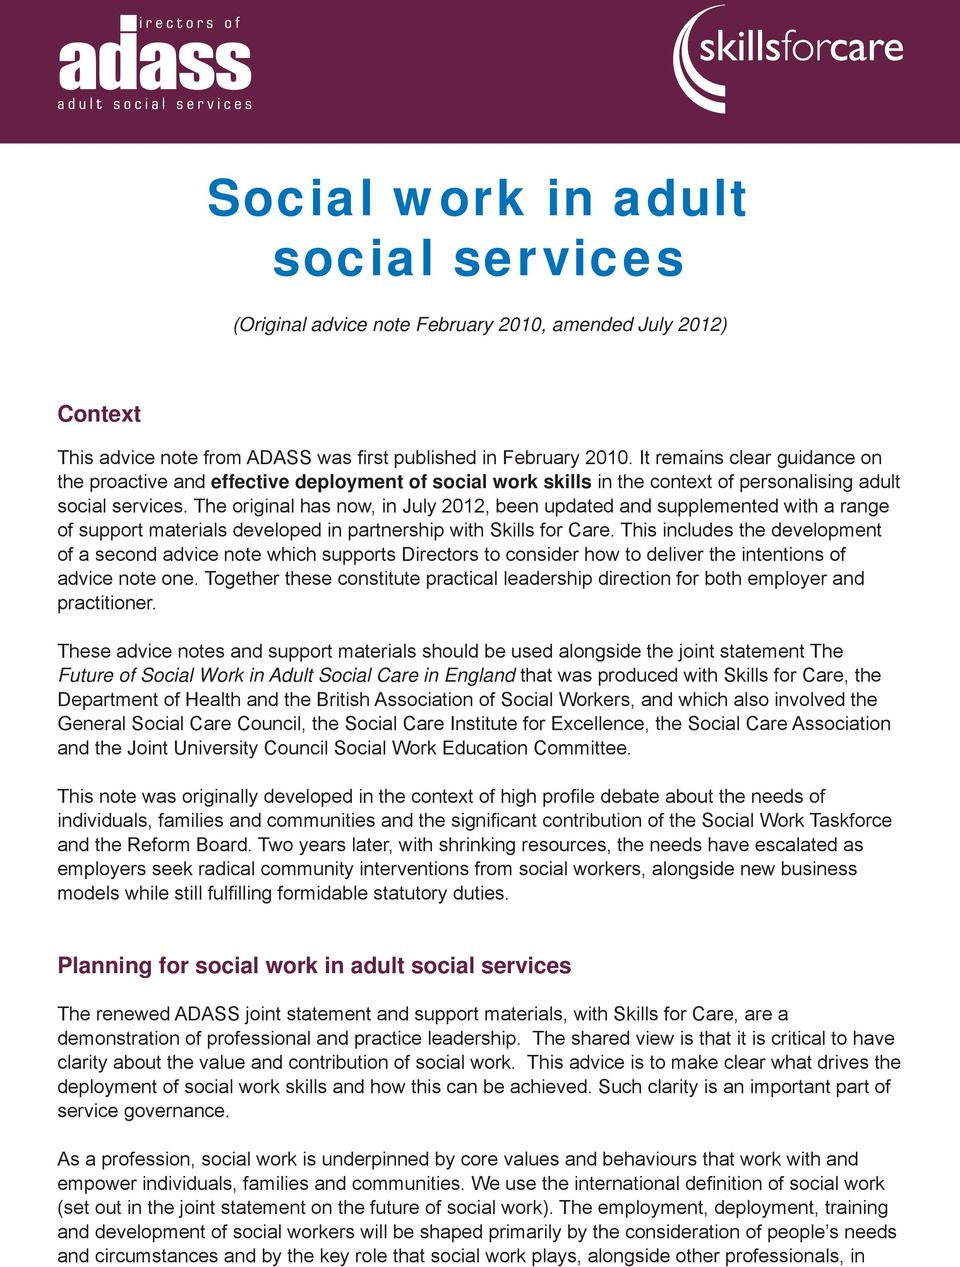 The original has now, in July 2012, been updated and supplemented with a range of support materials developed in partnership with Skills for Care.